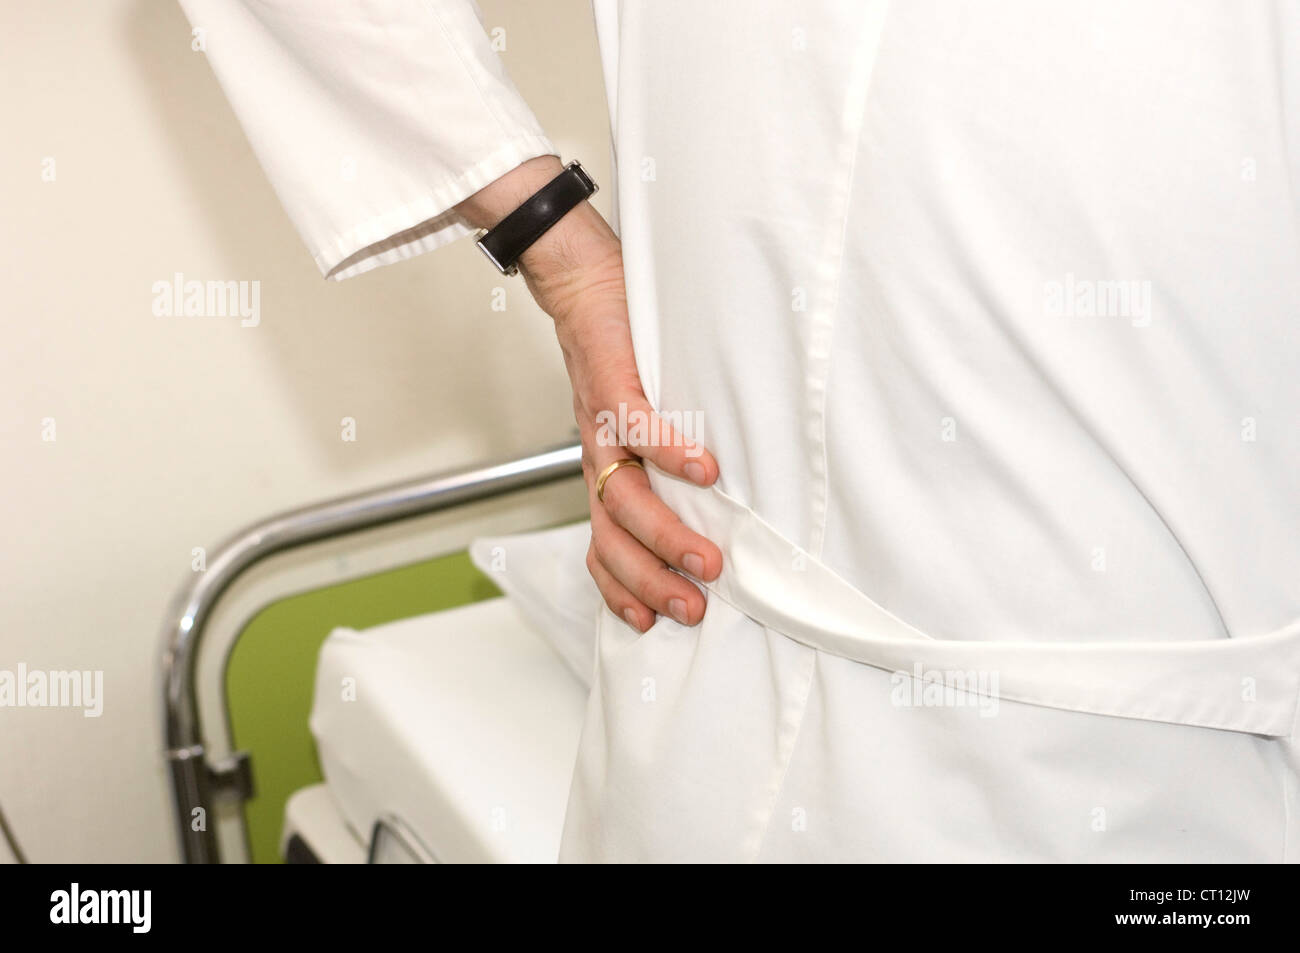 Hand on hip, a doctor at the hospital bedside of a patient. - Stock Image